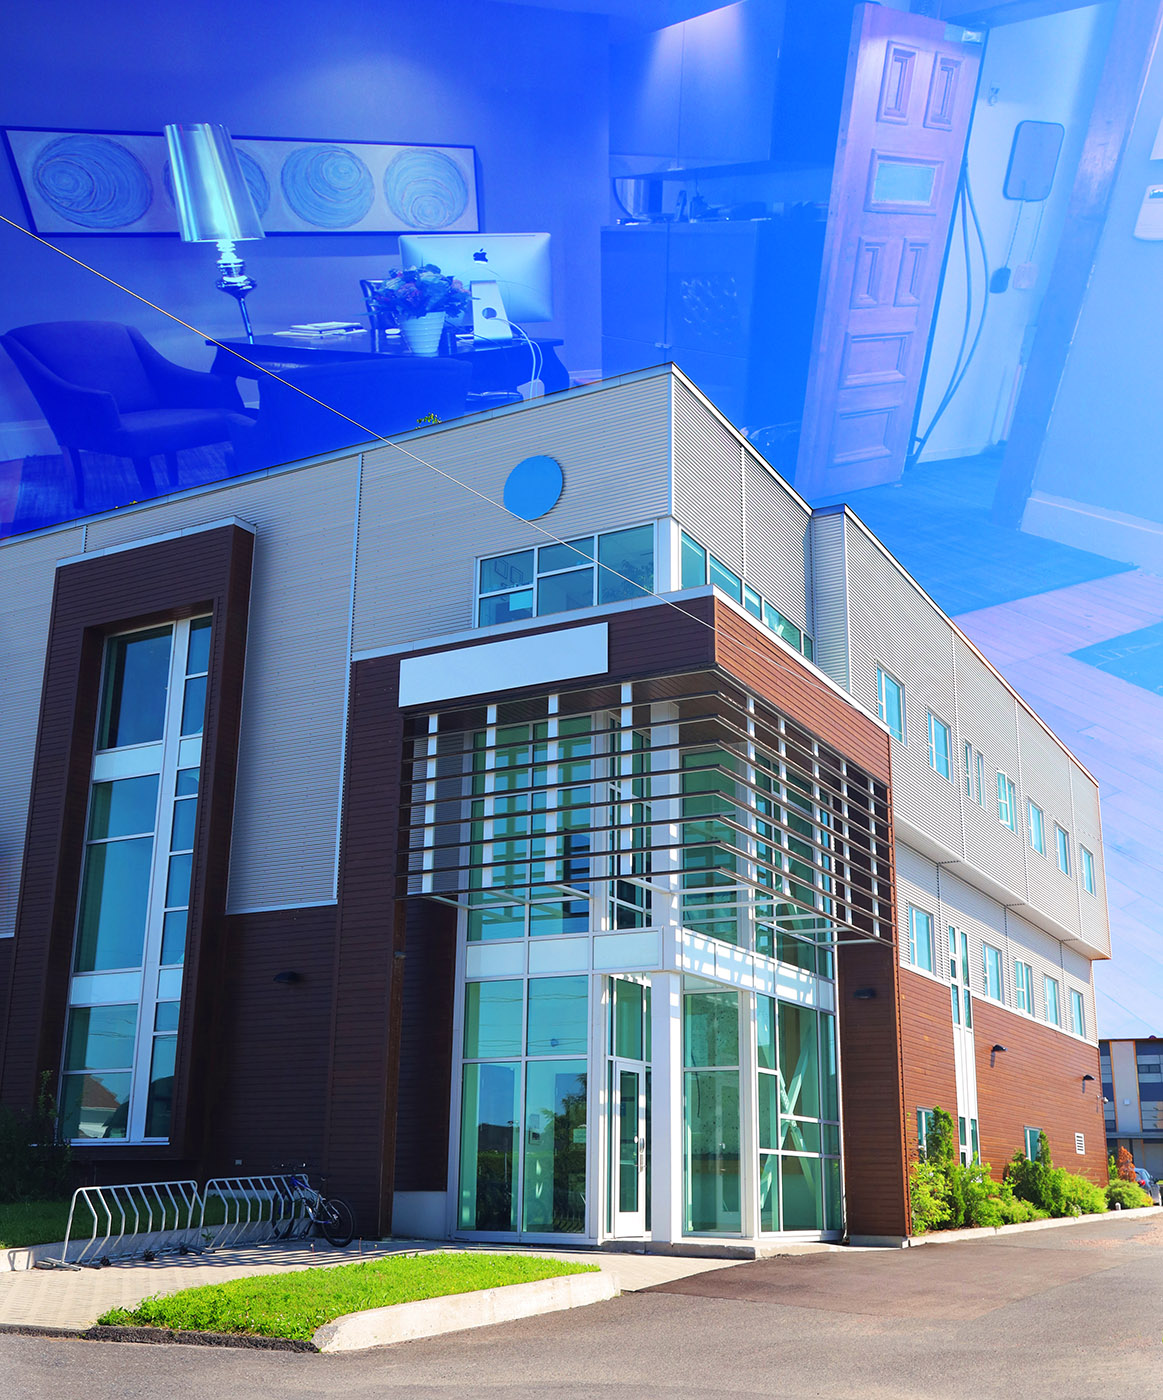 Modern Office Building - Royalty-Free Stock Imagery